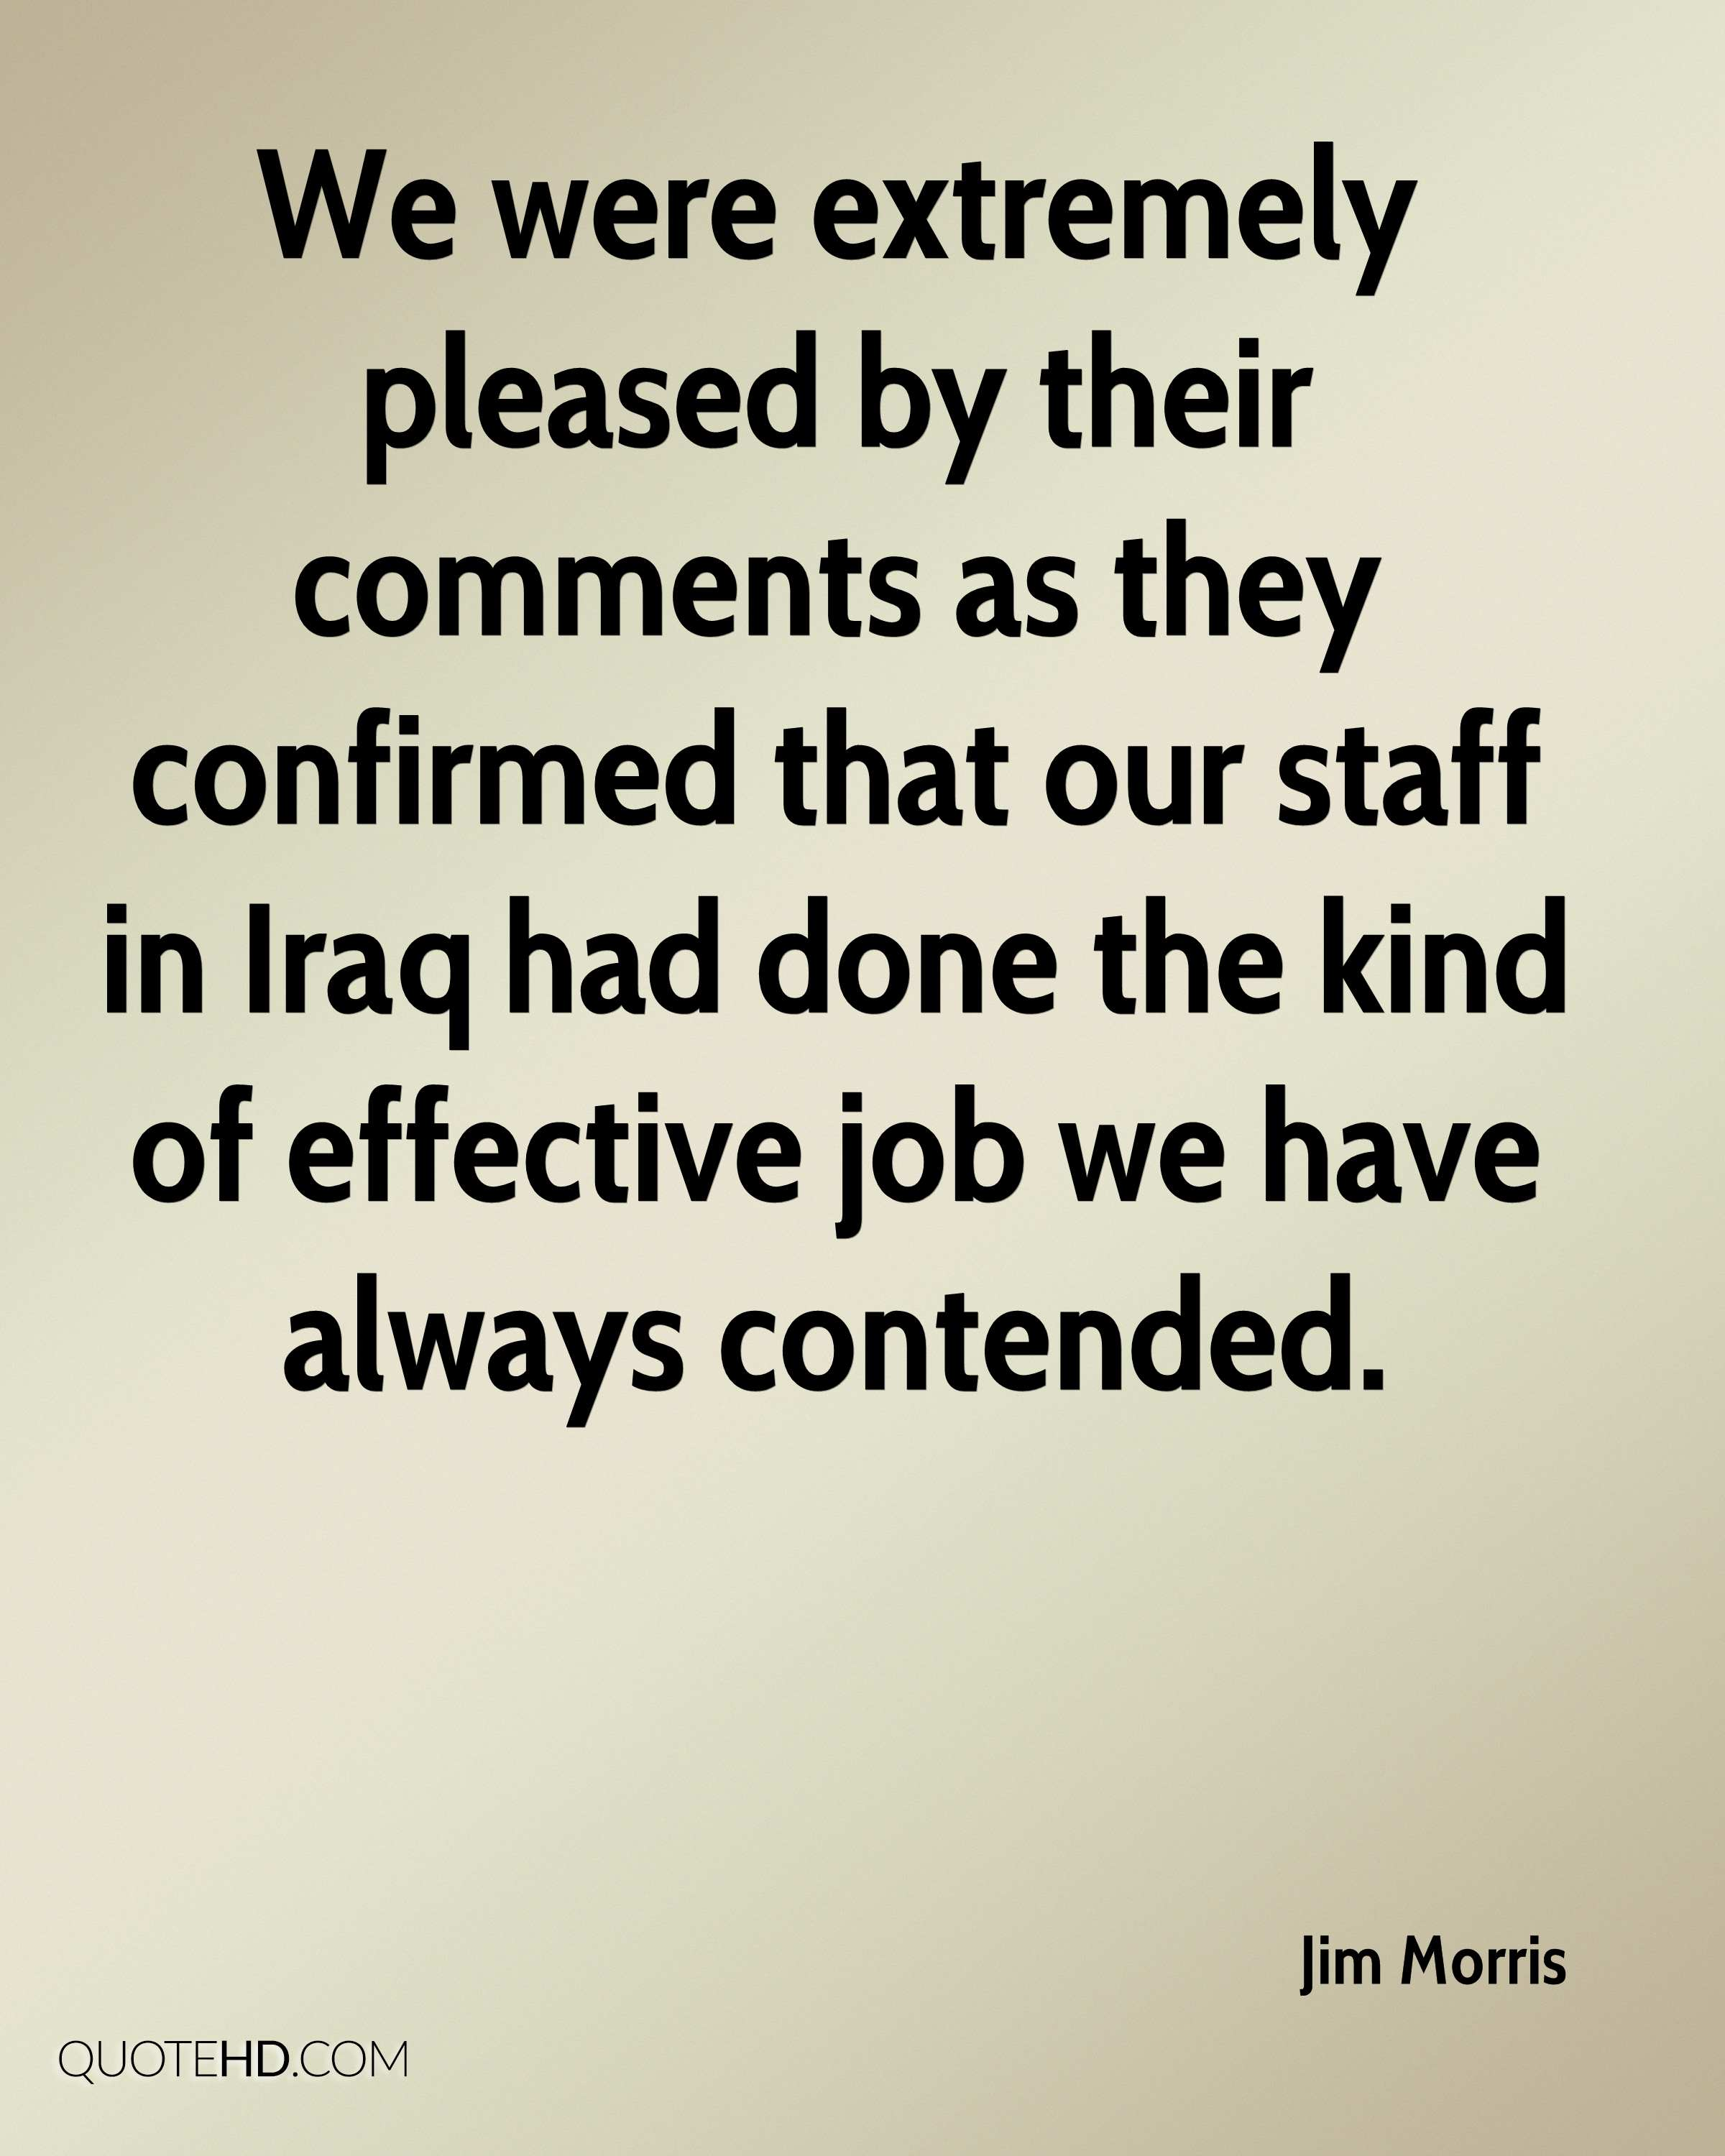 We were extremely pleased by their comments as they confirmed that our staff in Iraq had done the kind of effective job we have always contended.